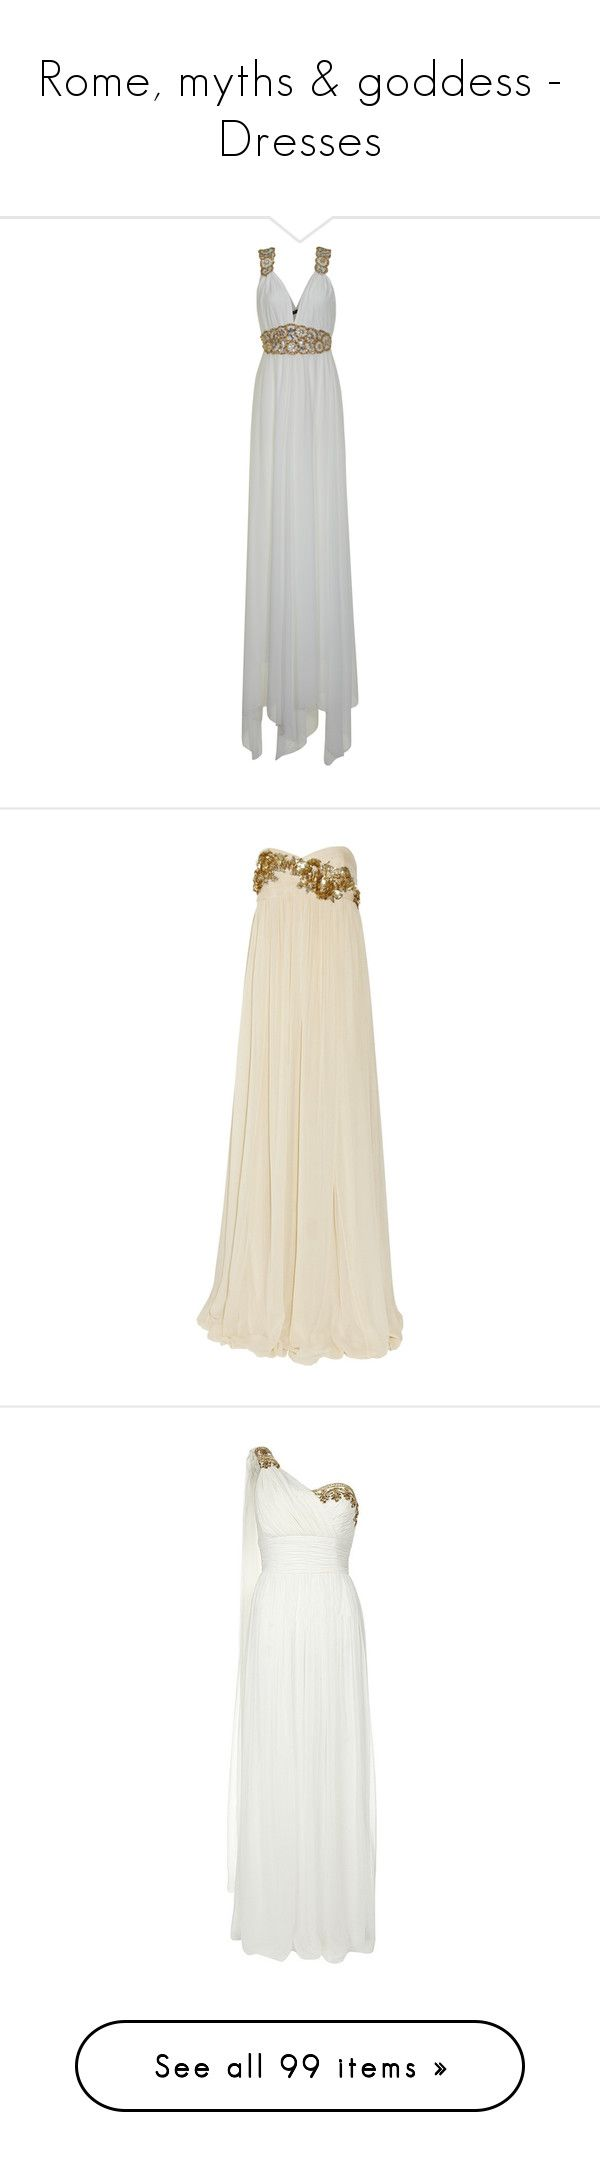 """Rome, myths & goddess - Dresses"" by ljdia ❤ liked on Polyvore featuring dresses, gowns, long dresses, formal dresses, vestidos, prom dresses, gold formal gown, formal evening gowns, formal gowns and maxi dresses"